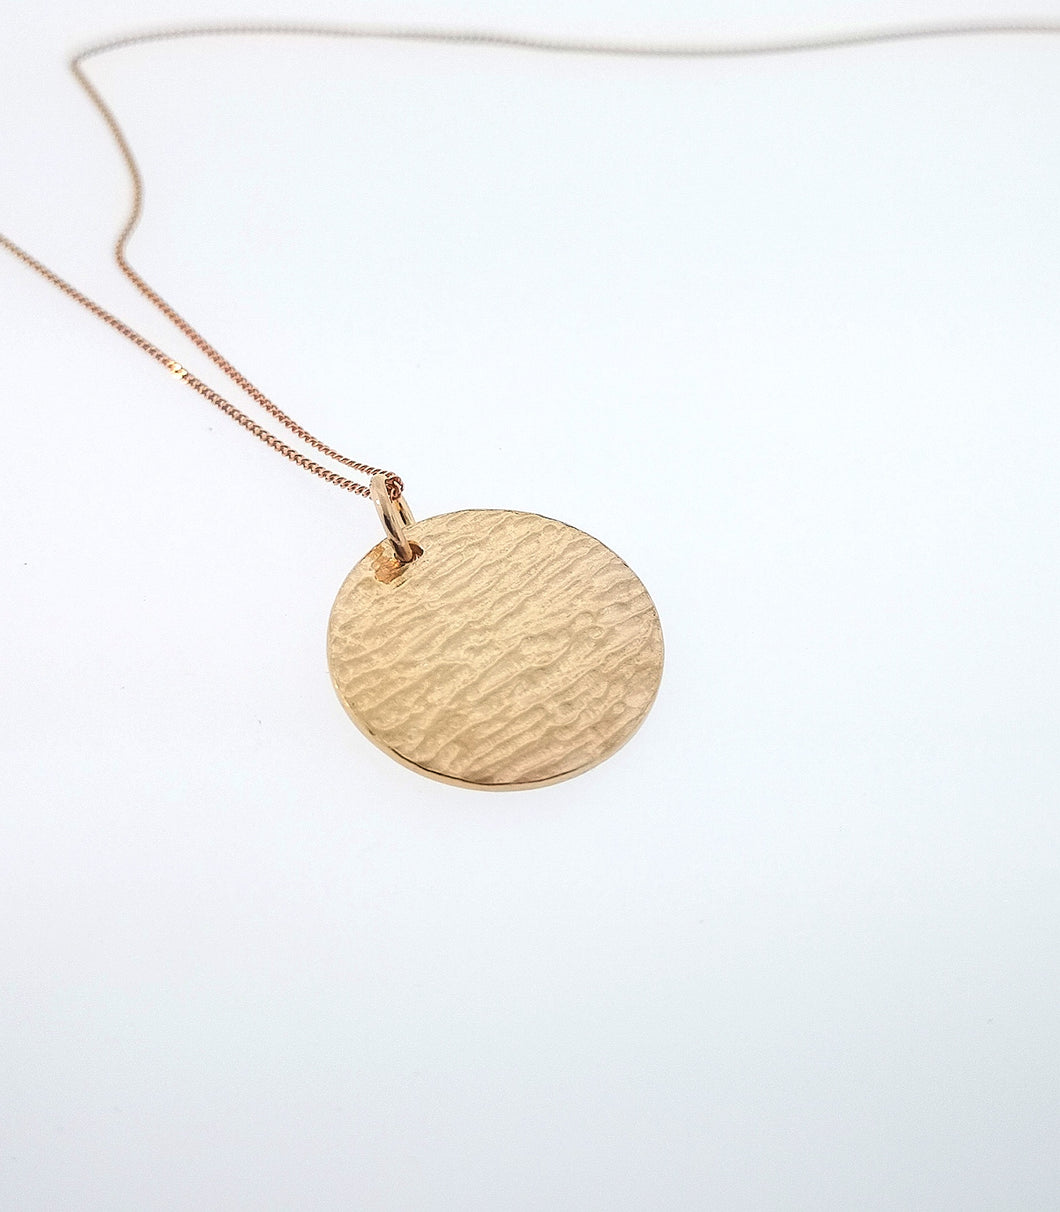 Ripple Disc Pendant - 9 Karat Rose Gold